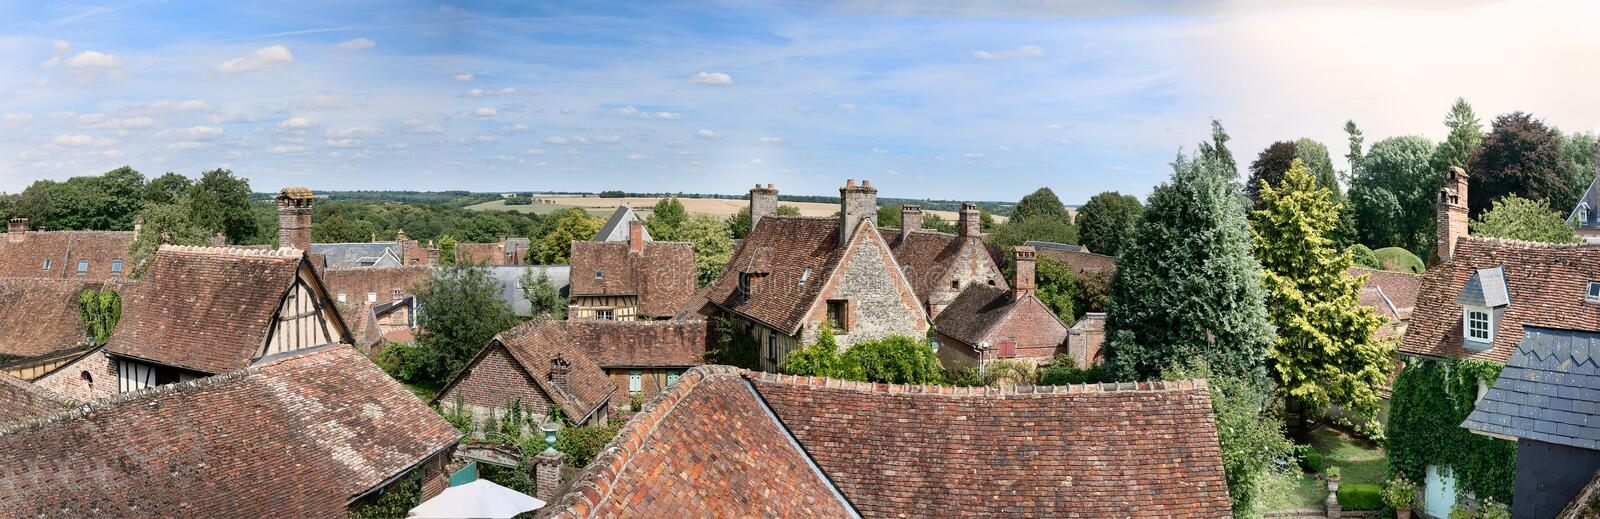 The medieval city of Gerberoy in France royalty free stock photography